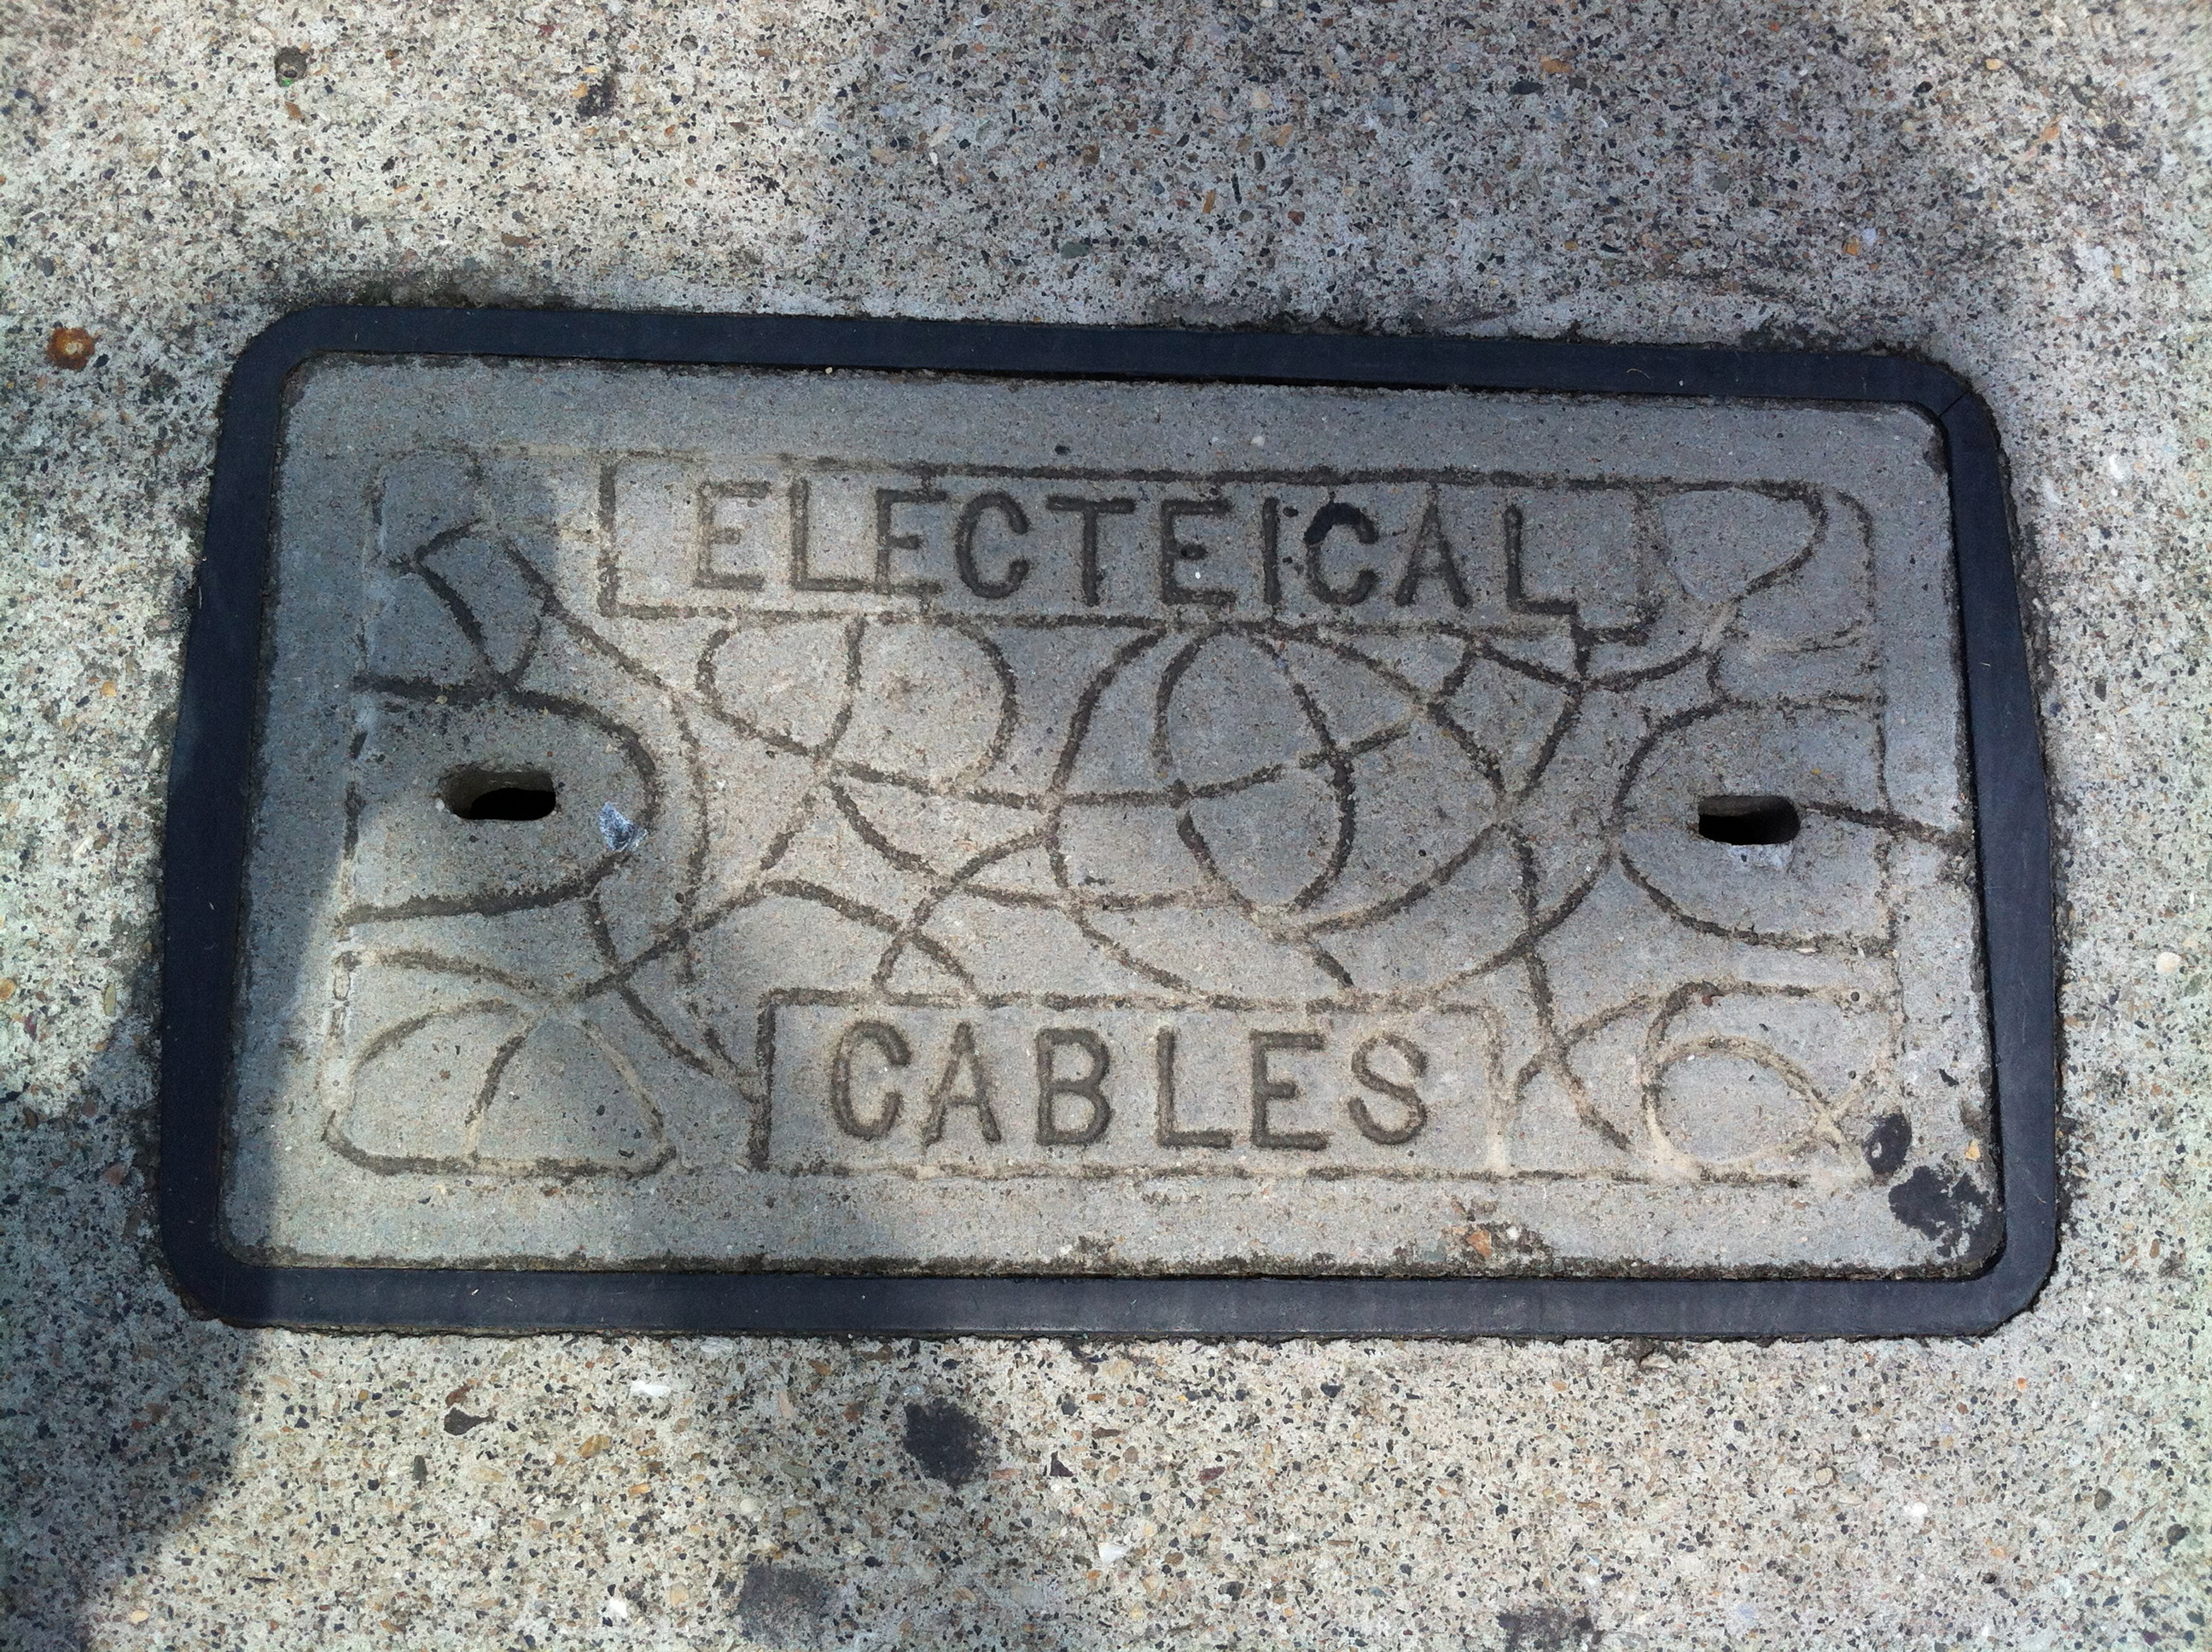 Concrete cover with the typo 'Electeical cables'